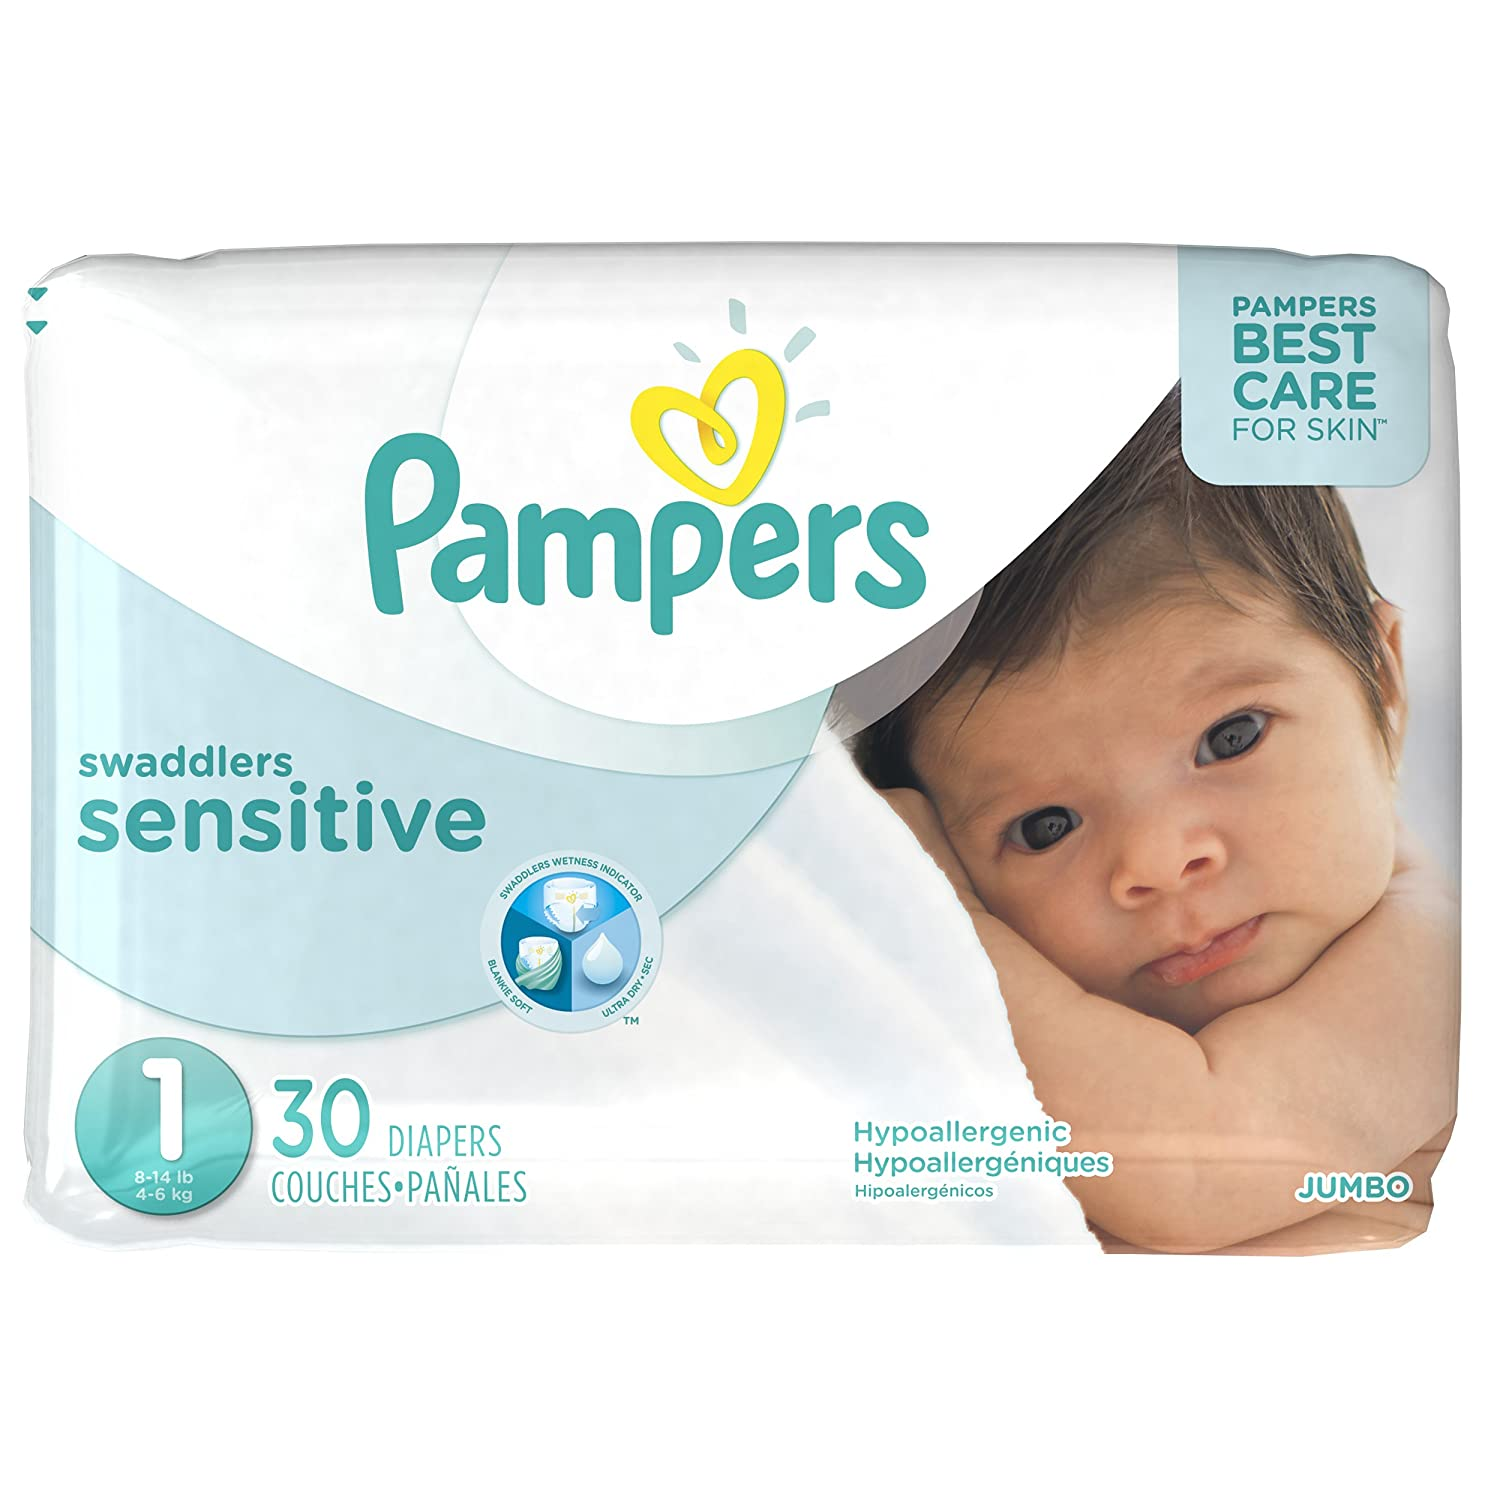 Amazon.com: Swaddlers Sensitive Newborn Diapers Size 1 30 count: Prime Pantry